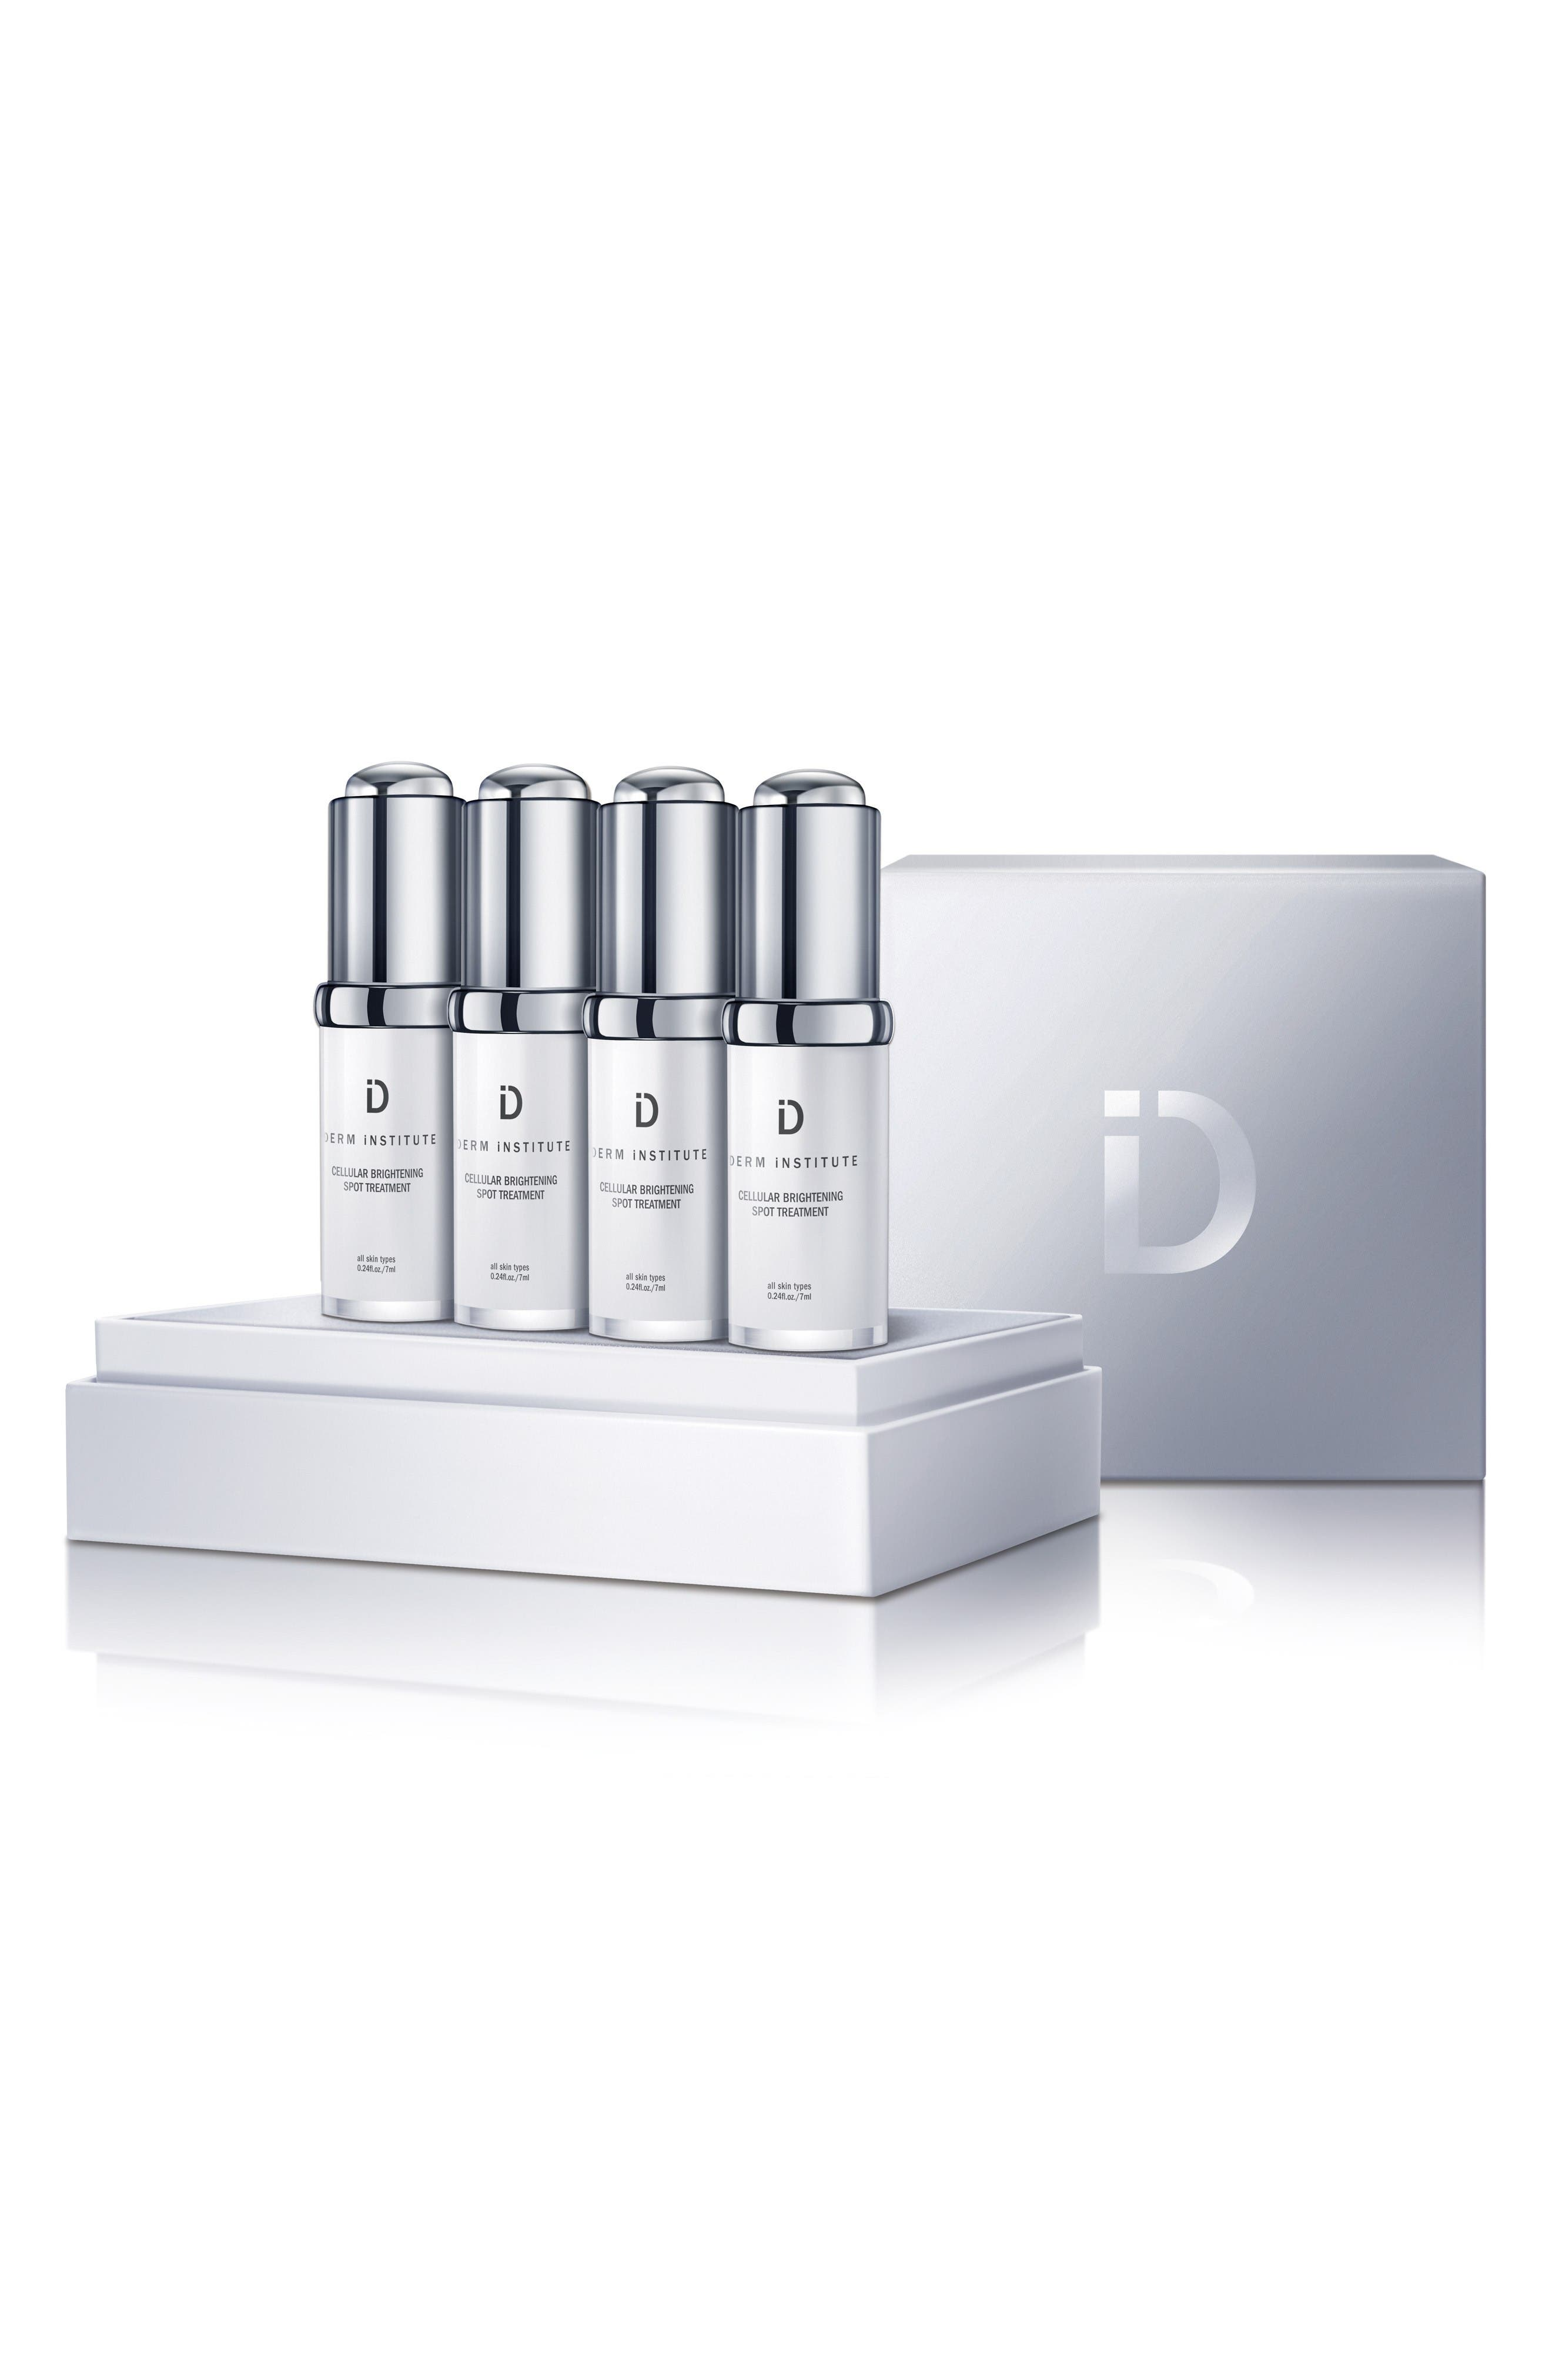 Main Image - SPACE.NK.apothecary Derm Institute Cellular Brightening Spot Treatment